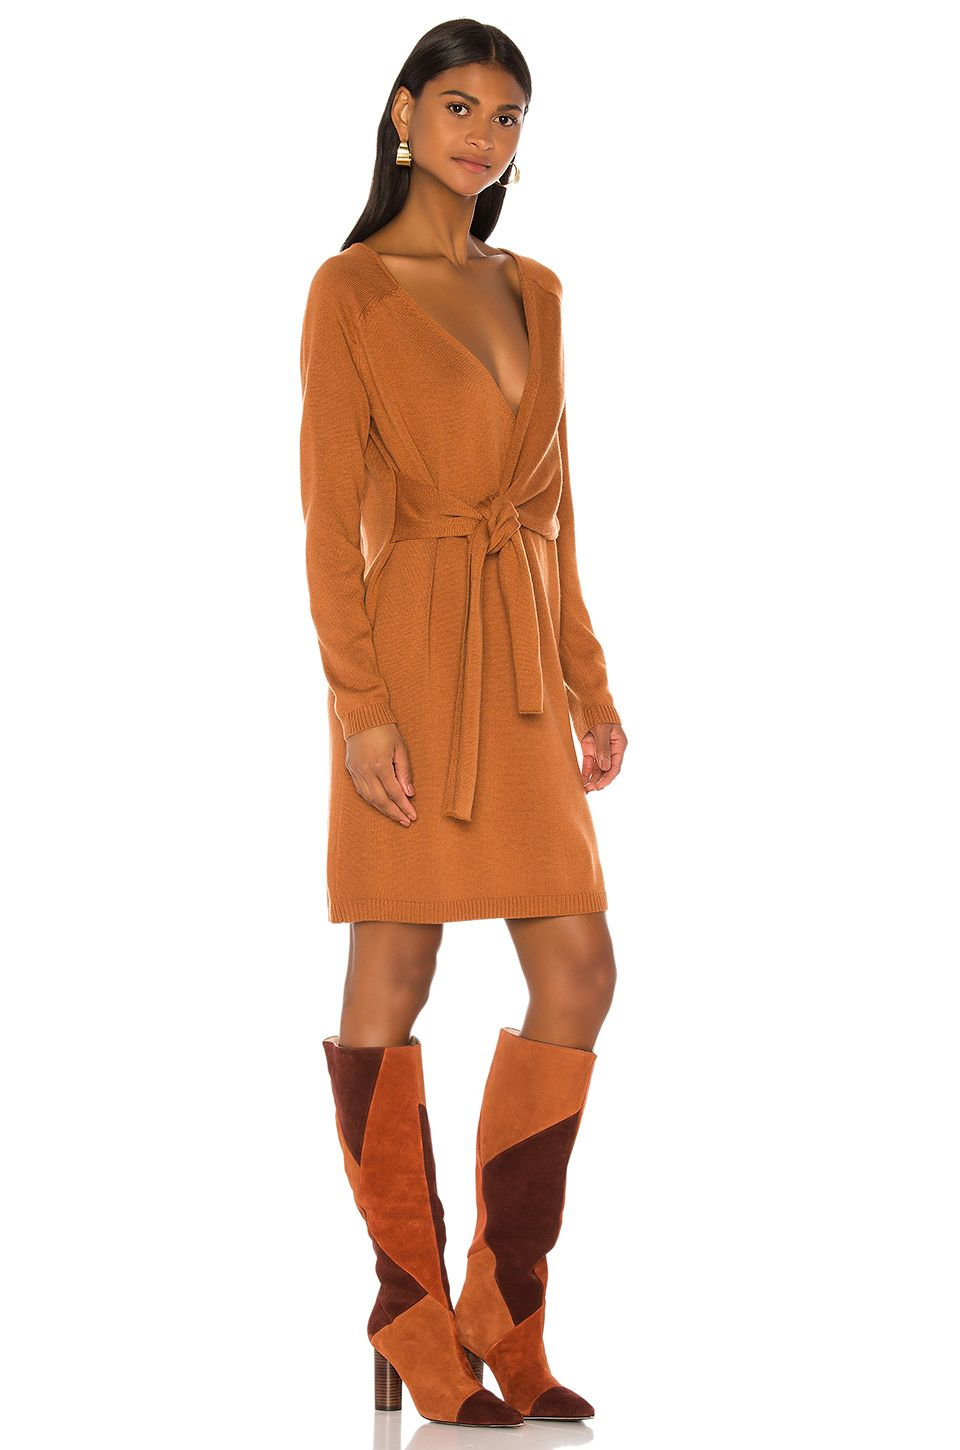 Song Of Style Sammy Wrap Dress In Tan Sponsored Spon Sammy Tan Dress Style Brown Wrap Dress Song Of Style Wrap Dress [ 1450 x 960 Pixel ]